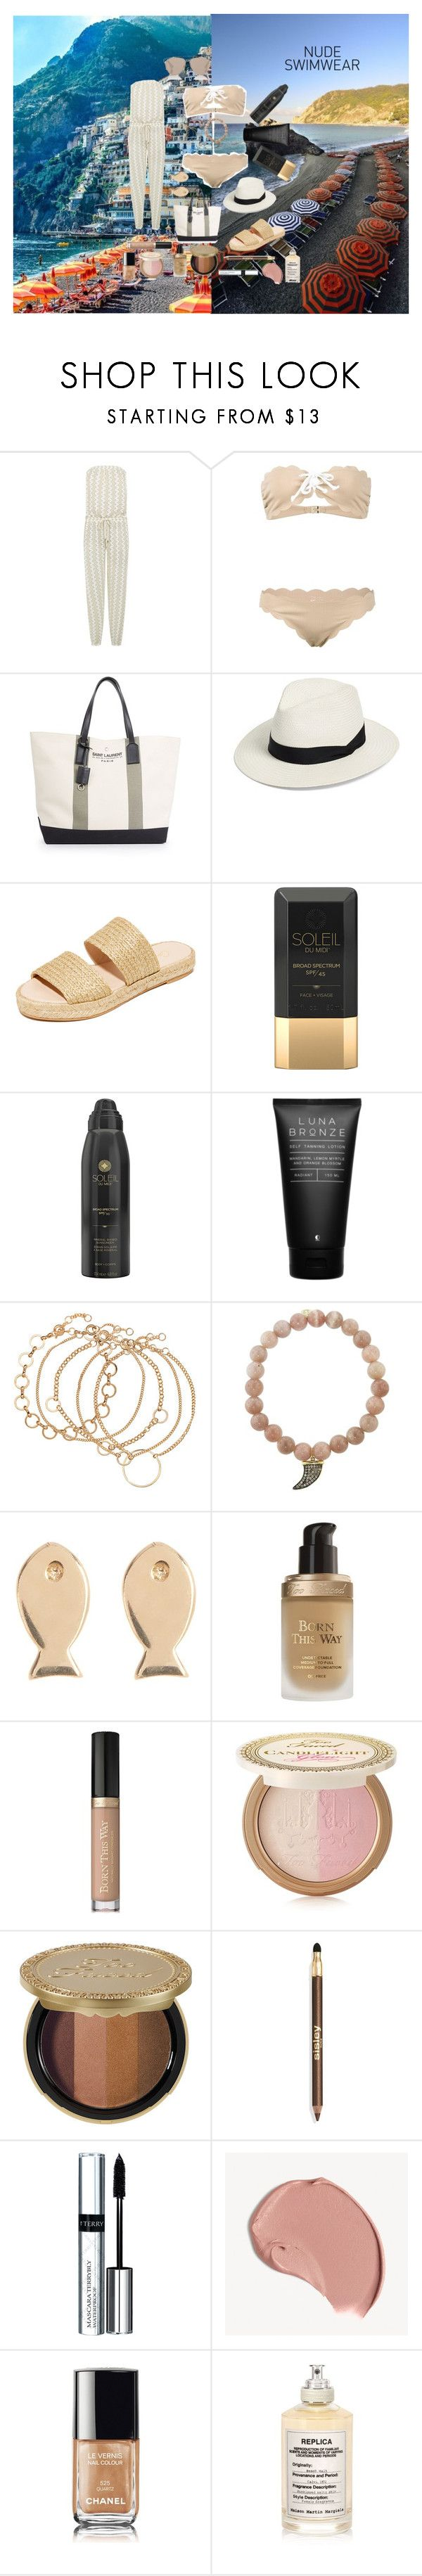 """Italian Odyssey"" by atho-12345 on Polyvore featuring Melissa Odabash, Marysia Swim, Yves Saint Laurent, rag & bone, Carmelinas, Soleil Toujours, Luna Bronze, Sydney Evan, Candela and Too Faced Cosmetics"